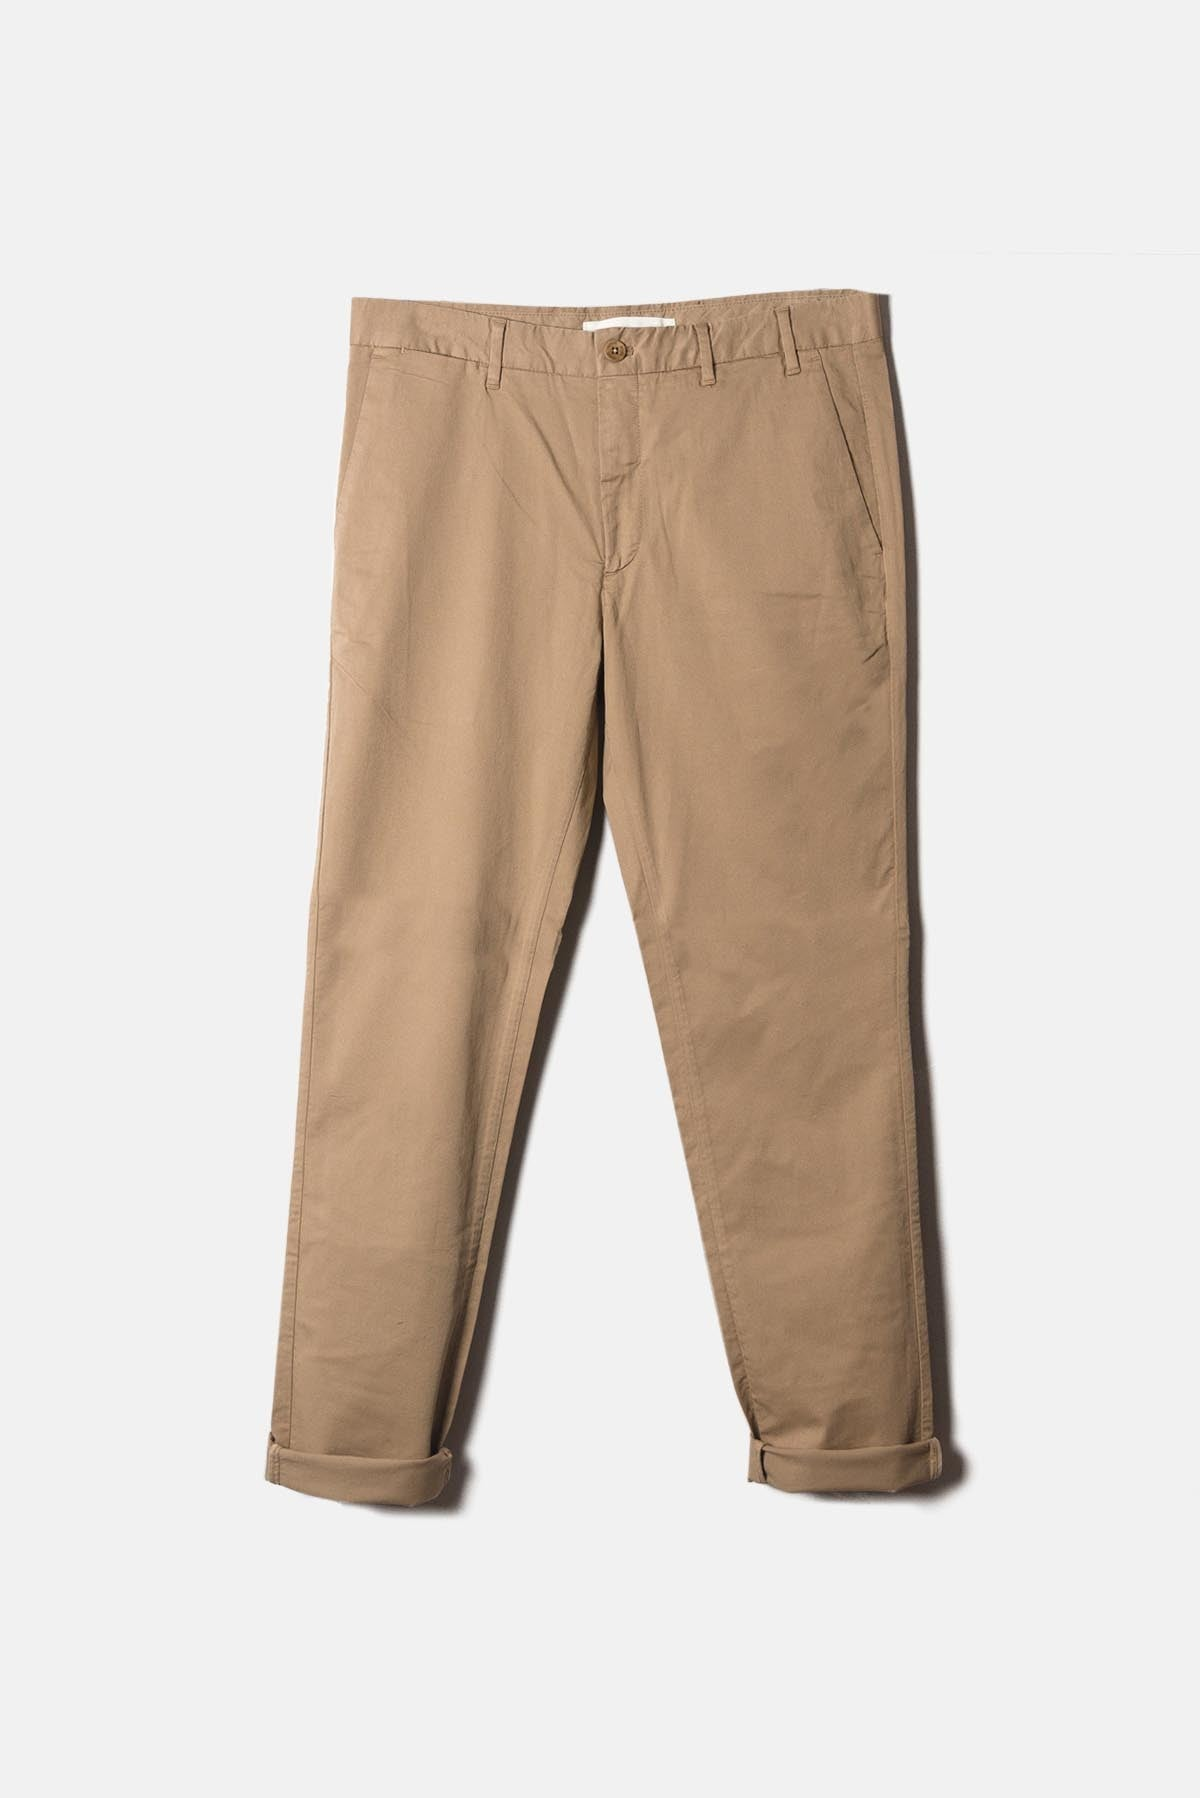 d4ac2cb20f Norse Projects Aros Slim Light Stretch Pant available from Priory